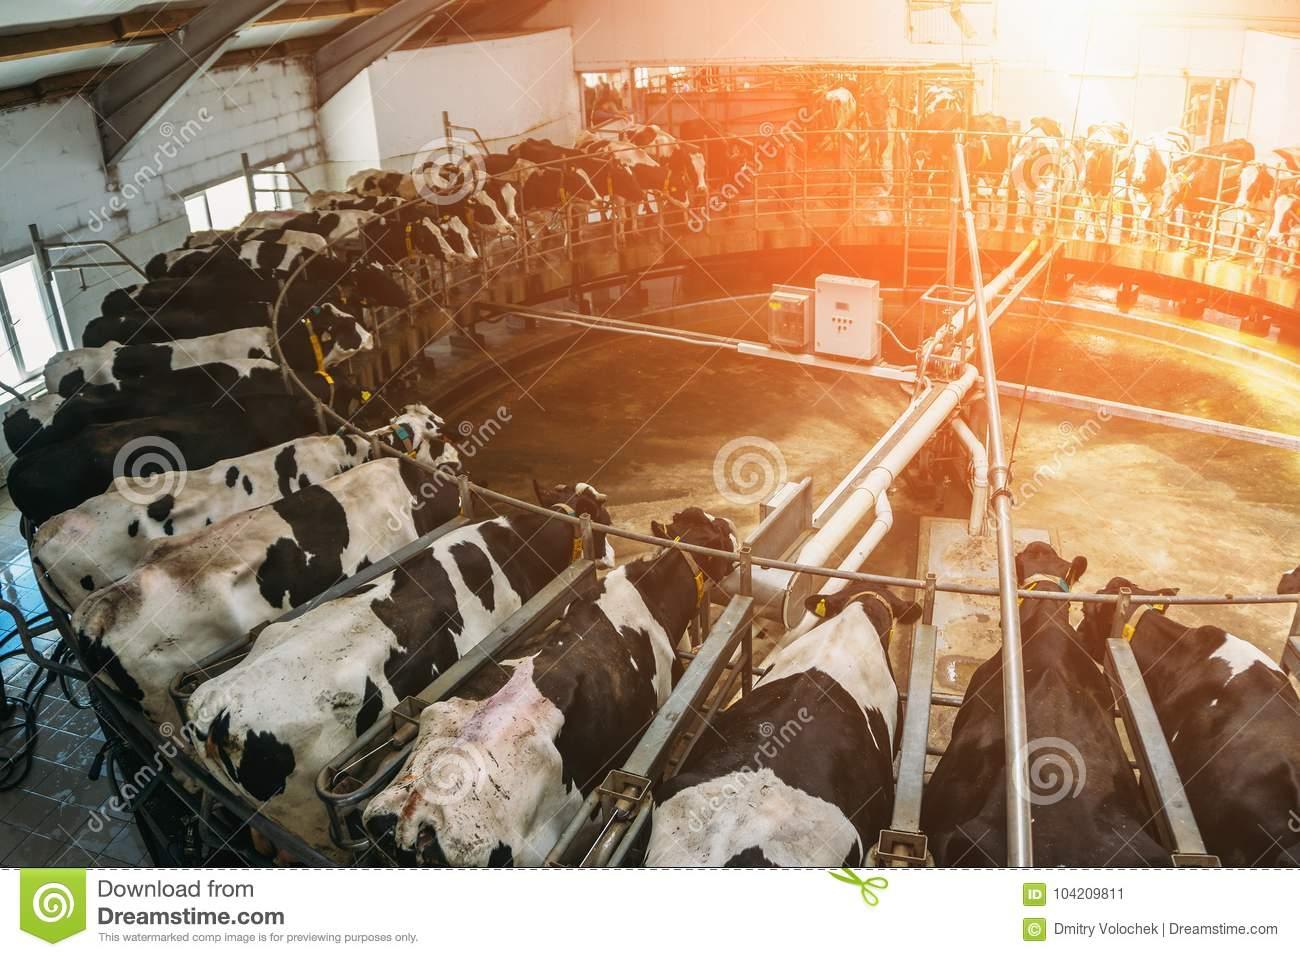 Livestock husbandry and Production of dairy products concept, Milking cows